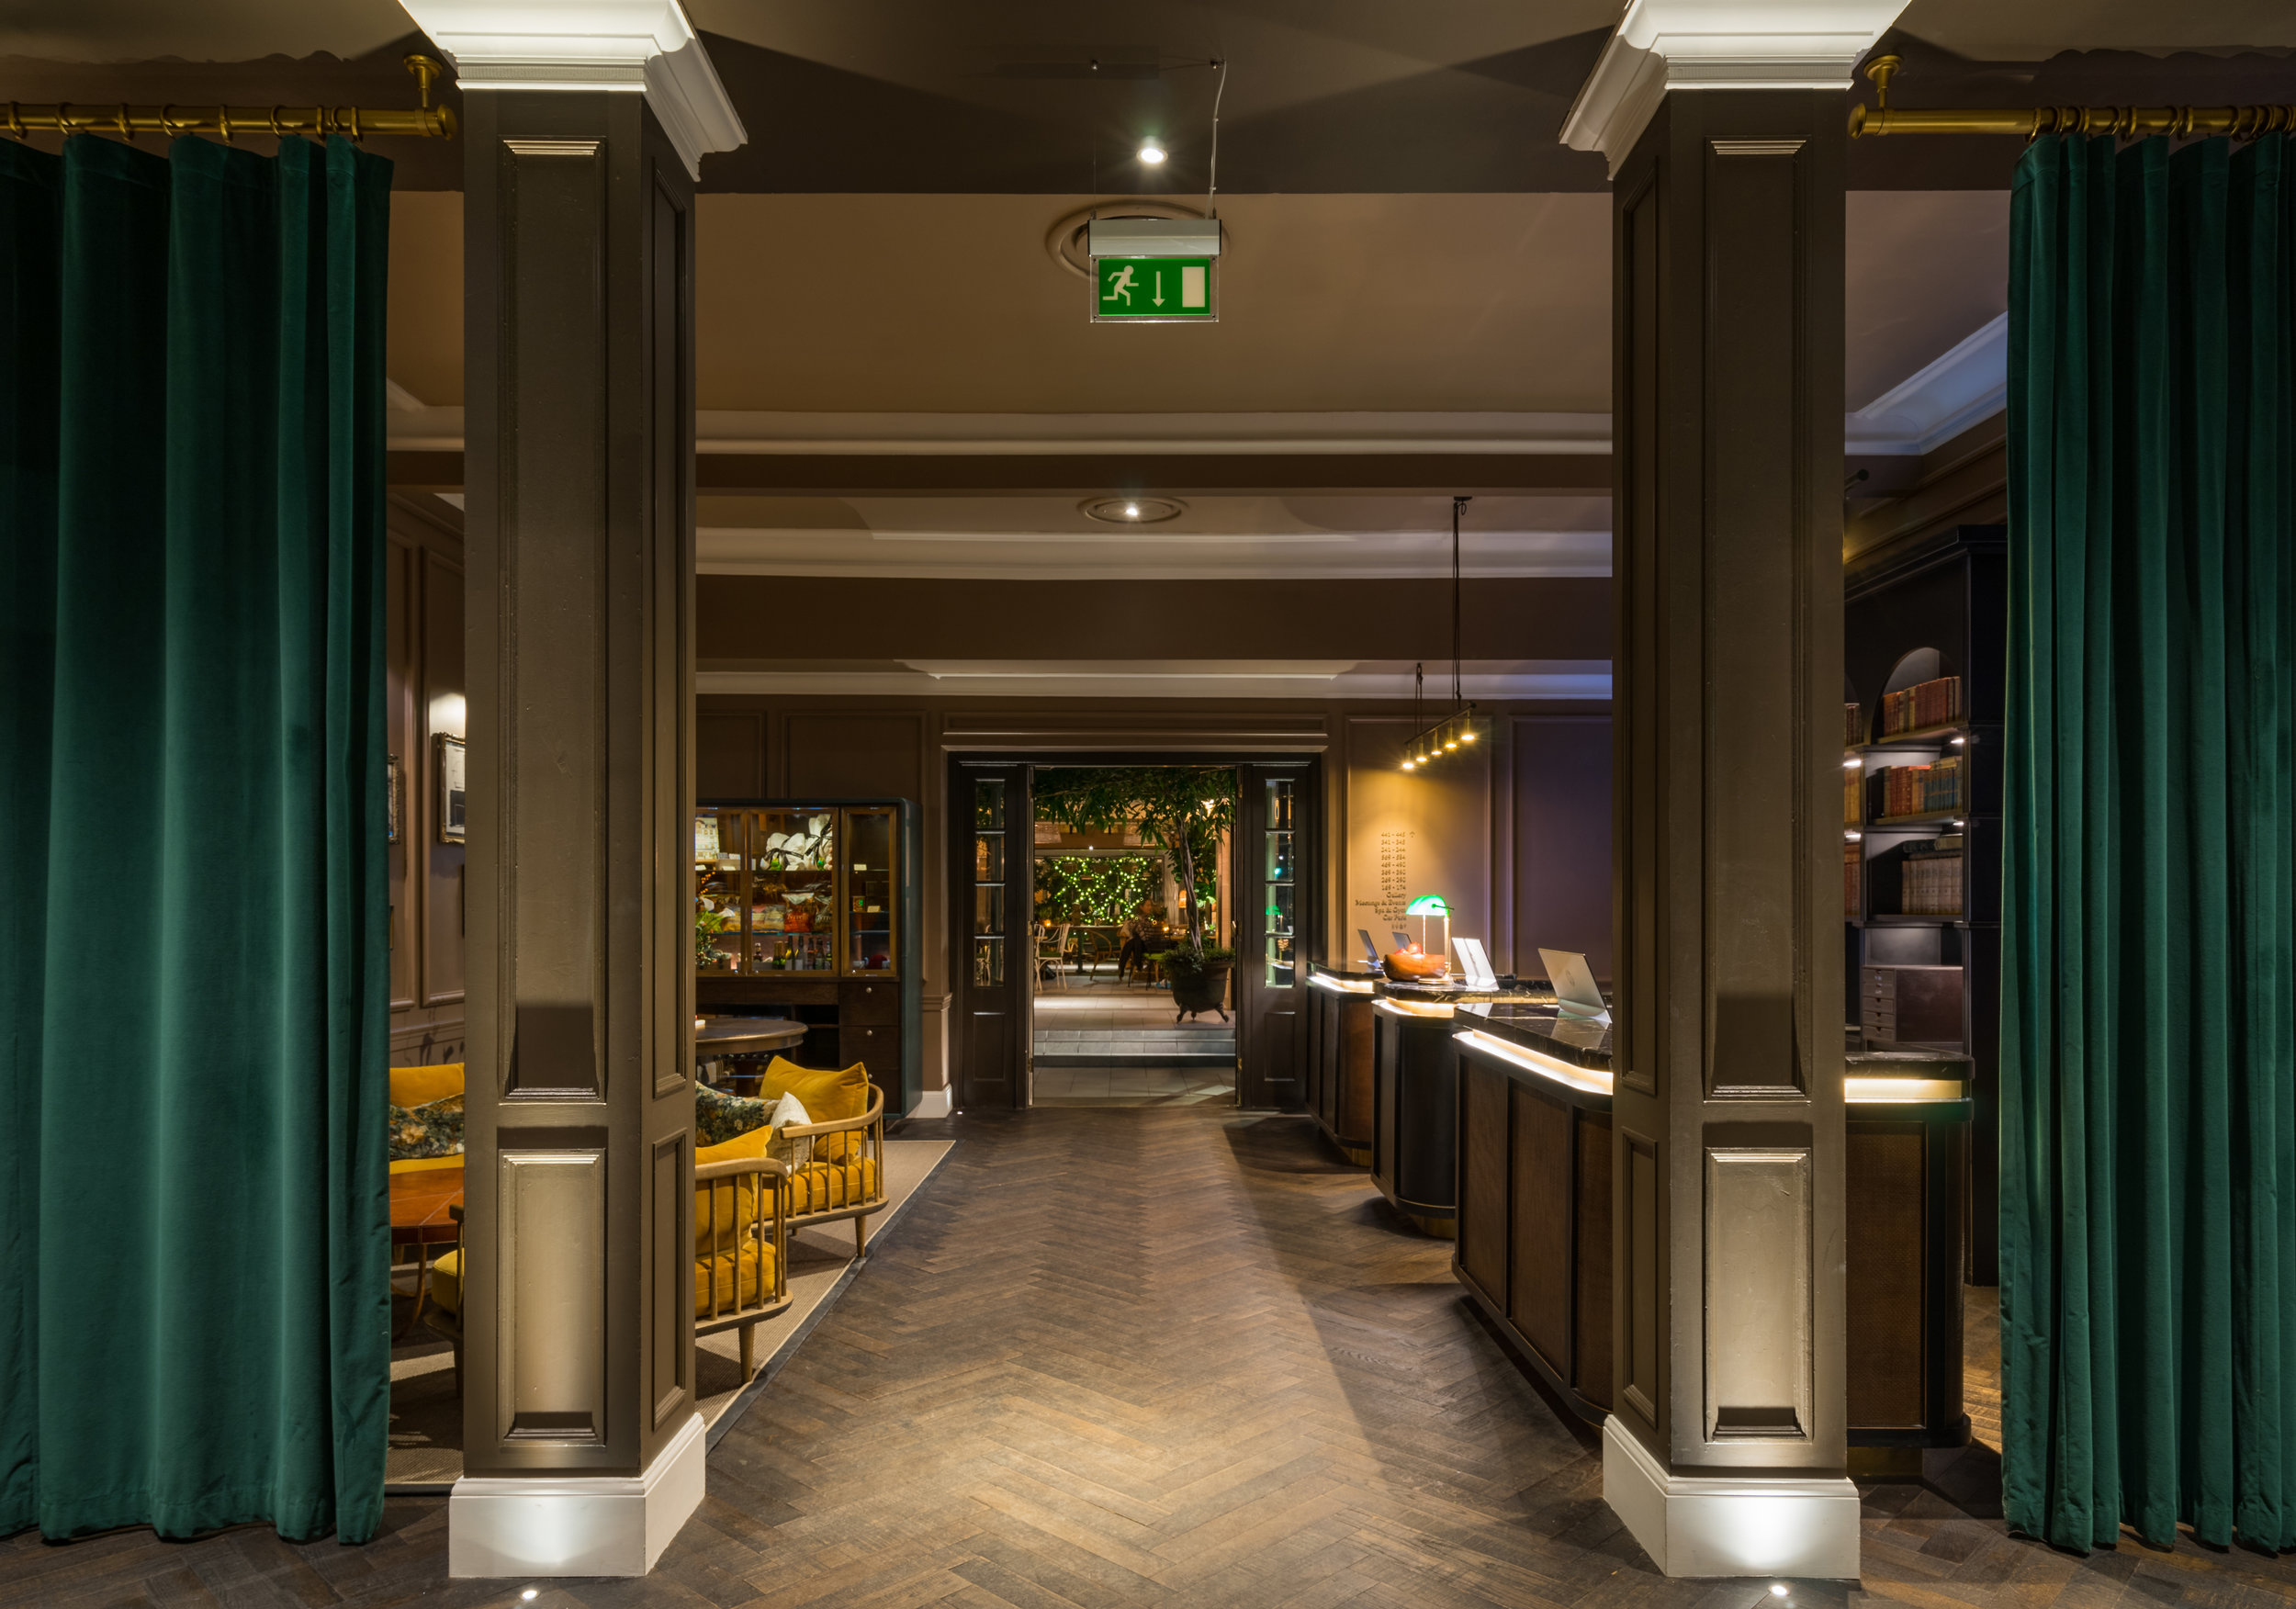 Aiming for a warm and relaxed environment, we worked with interior designers Goddard Littlefair to create a considered architectural and decorative lighting scheme, fitting for an elegant, 5-star hotel.